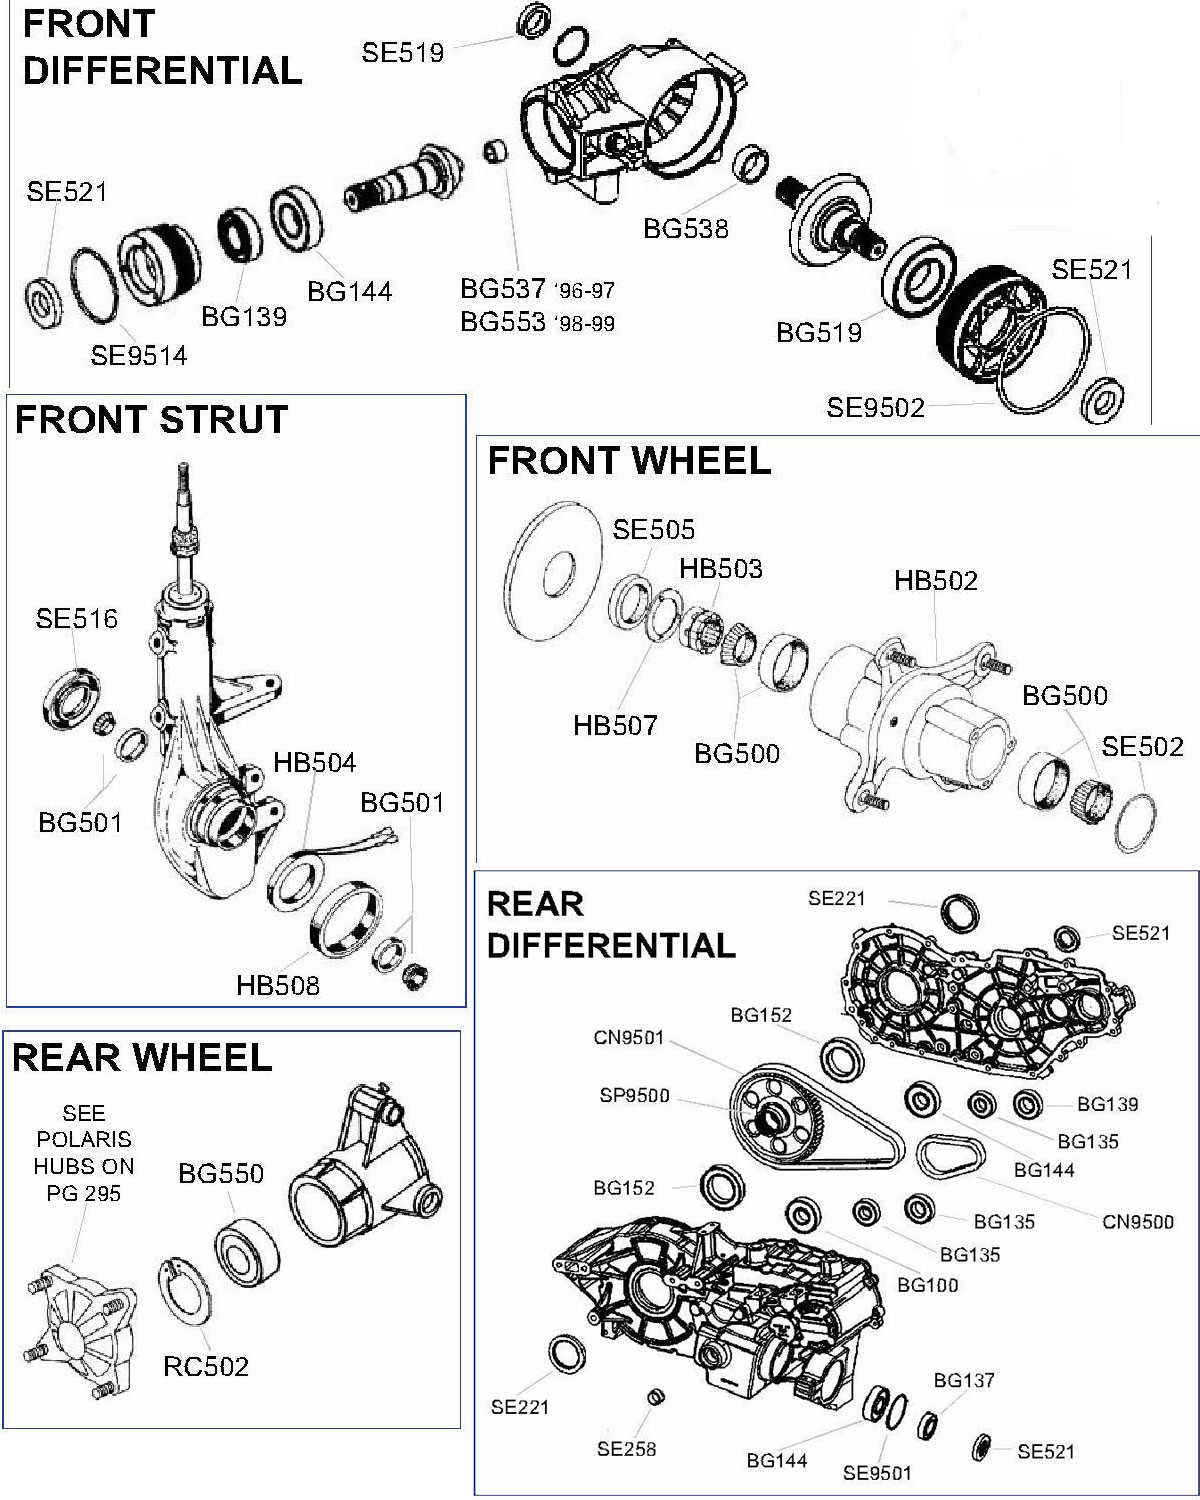 Polaris Trail Boss 250 Wiring Diagram. Engine. Wiring